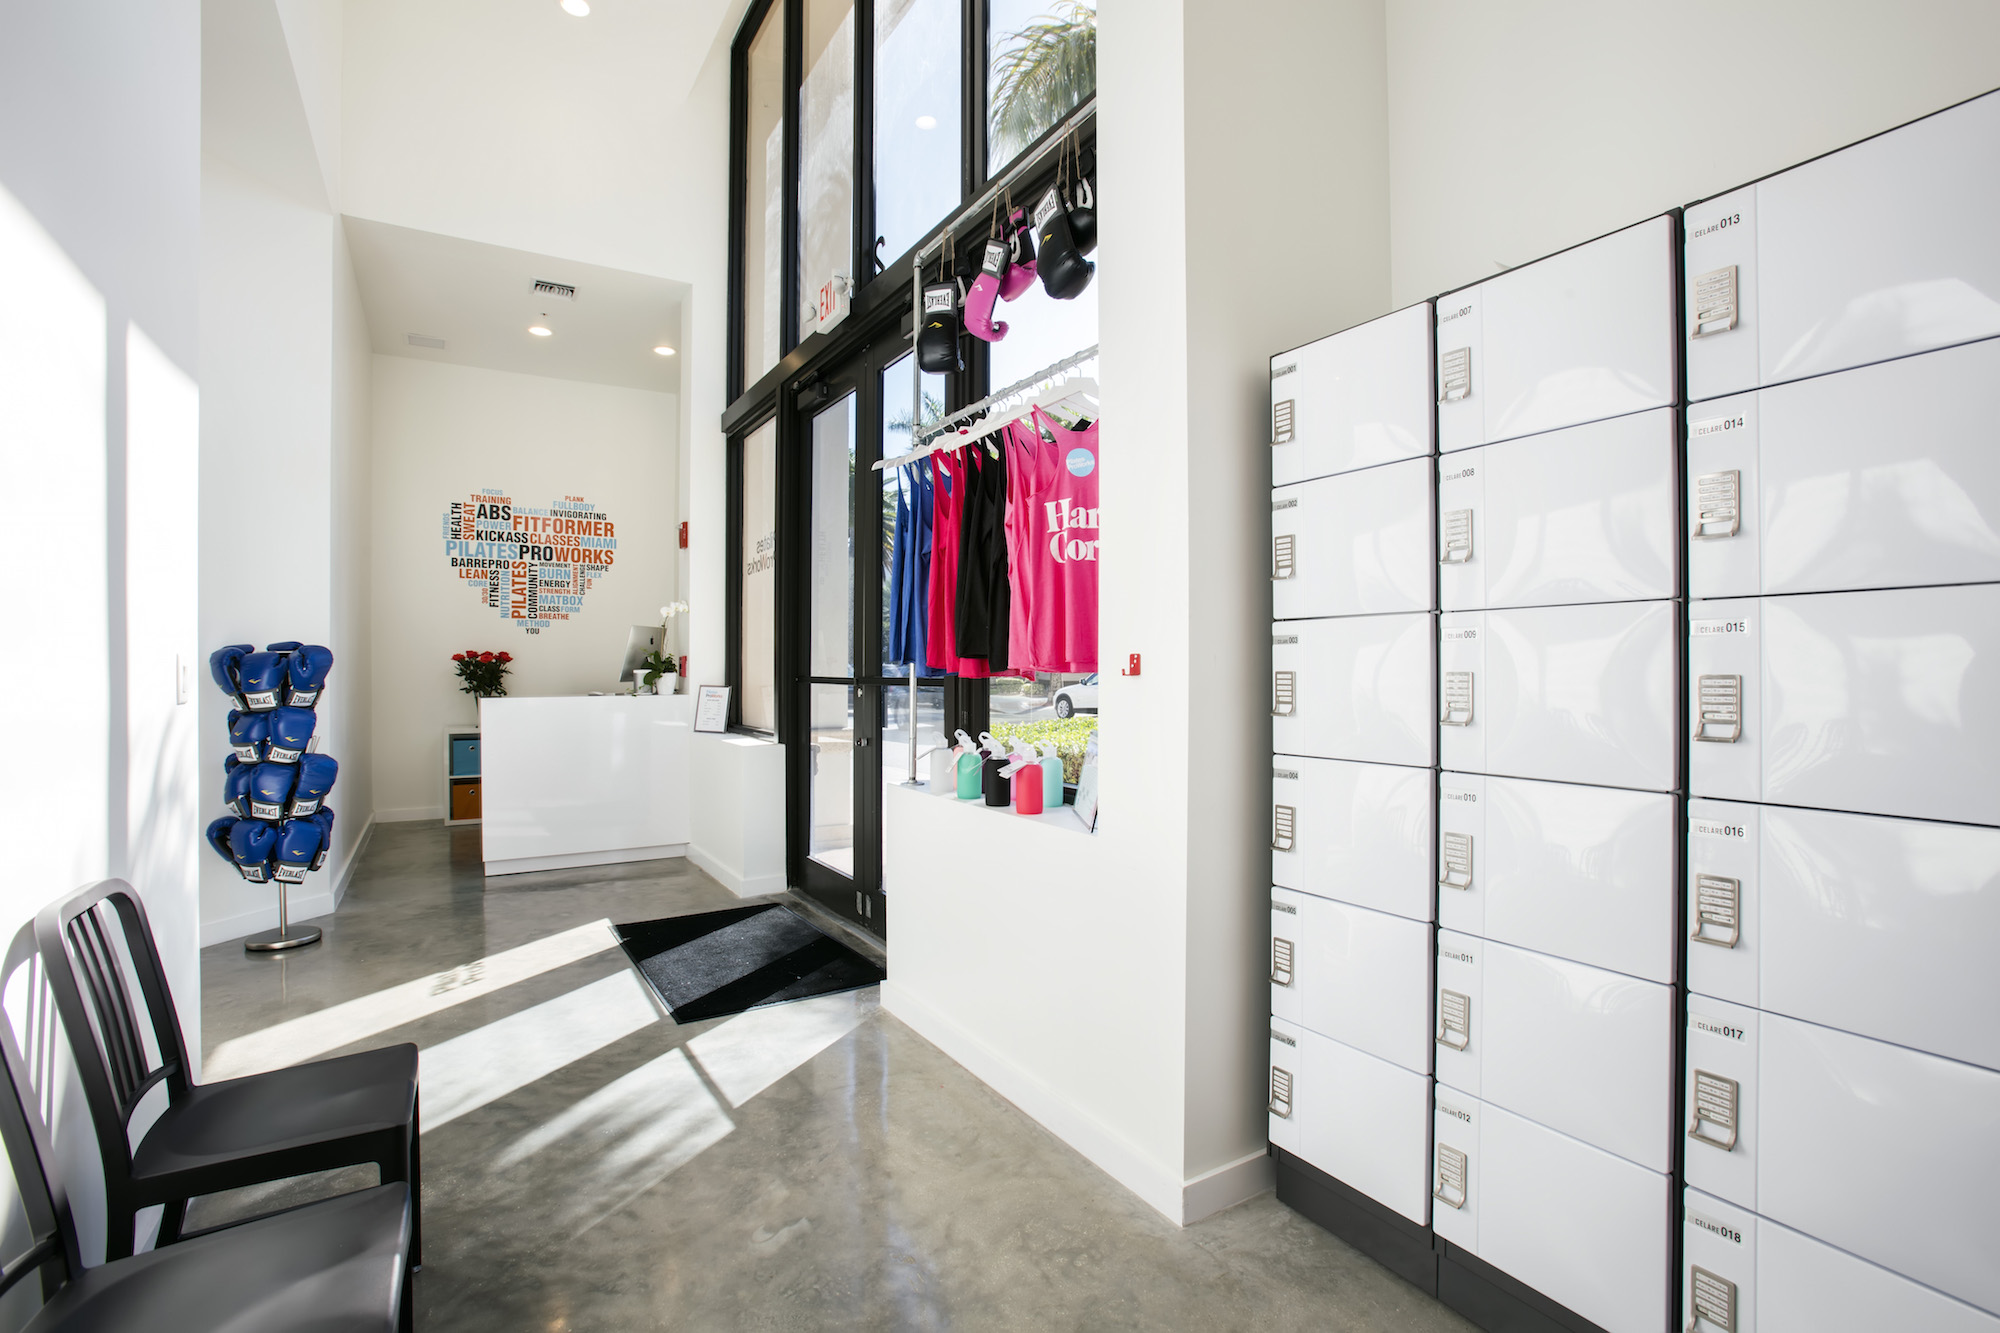 Pilates ProWorks Brings Boutique Boxing and Pilates to Coral Gables